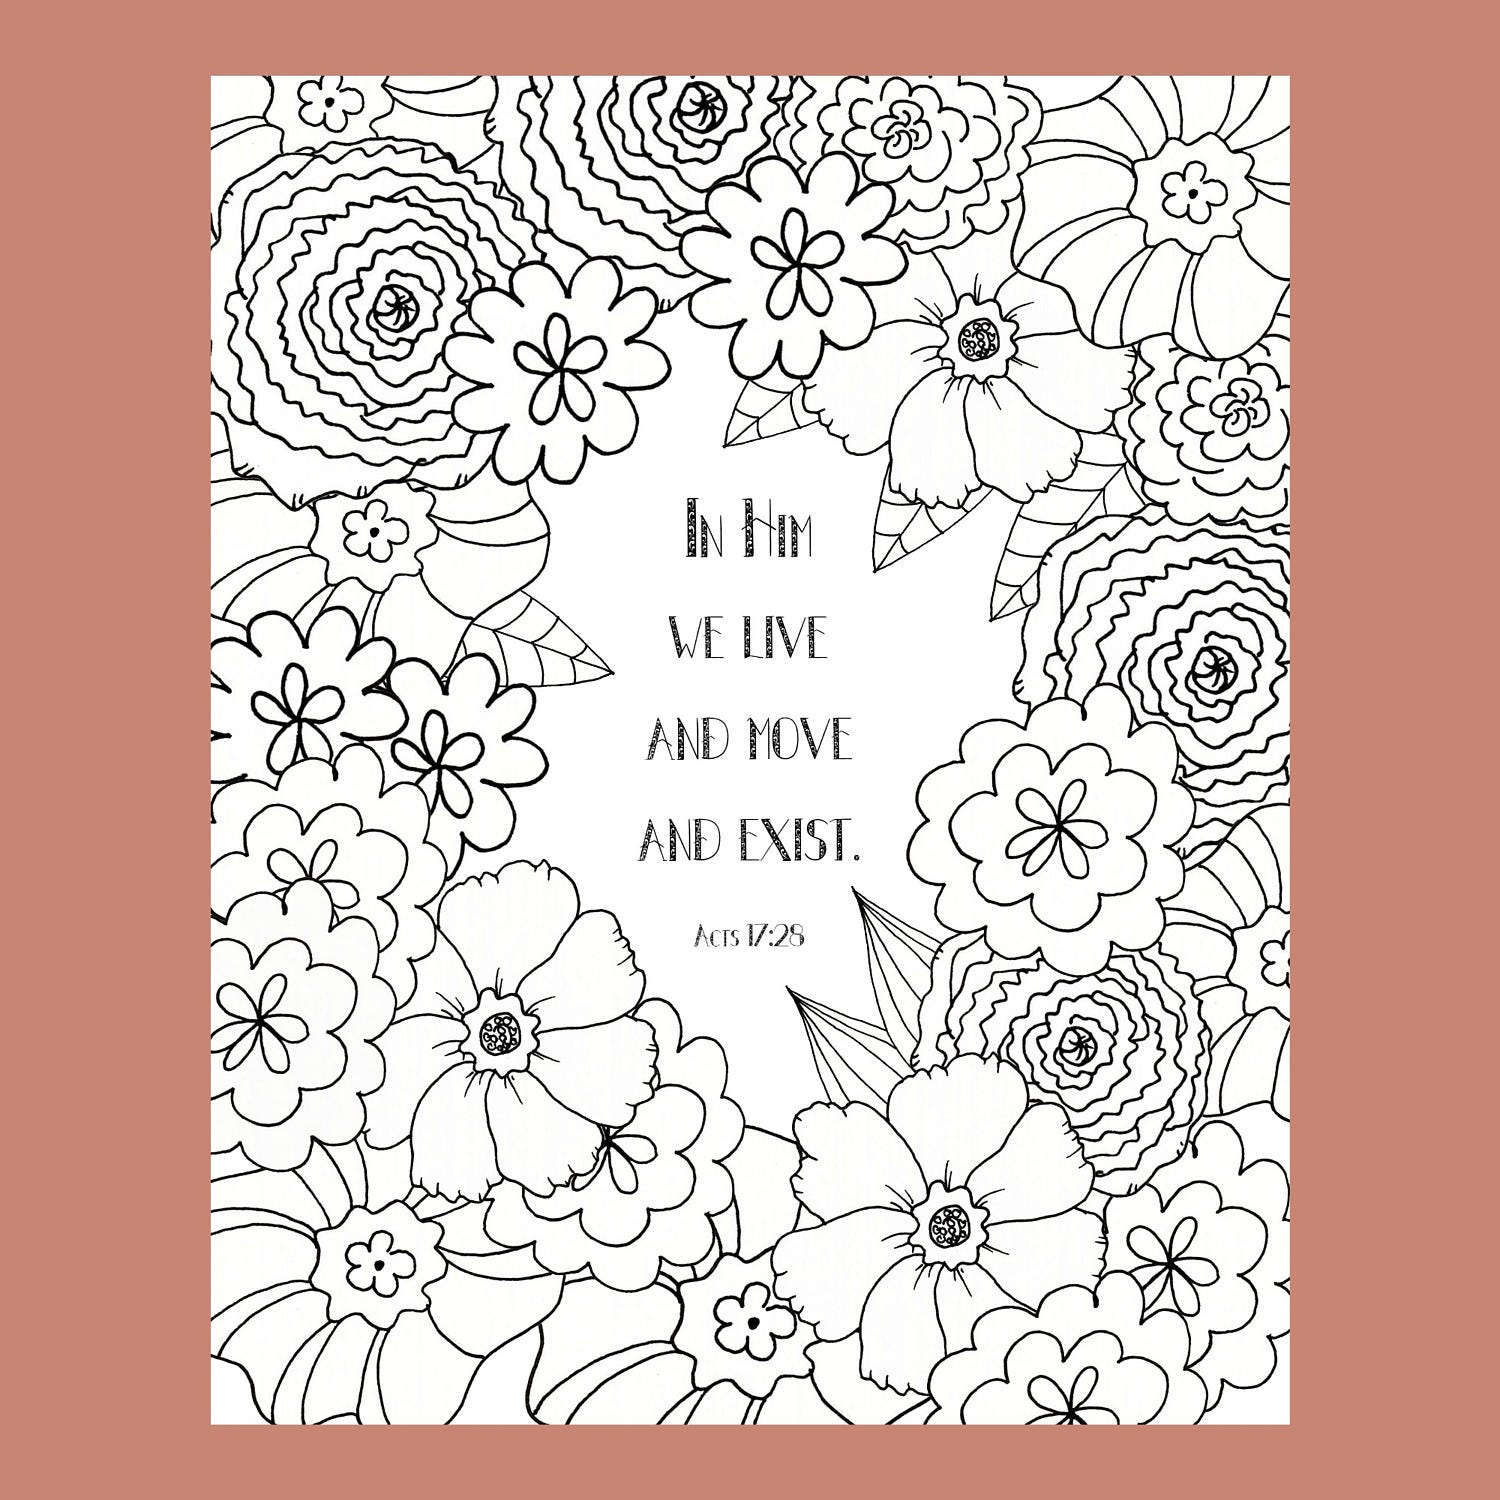 acts 17 25 coloring page bible verse coloring page christian